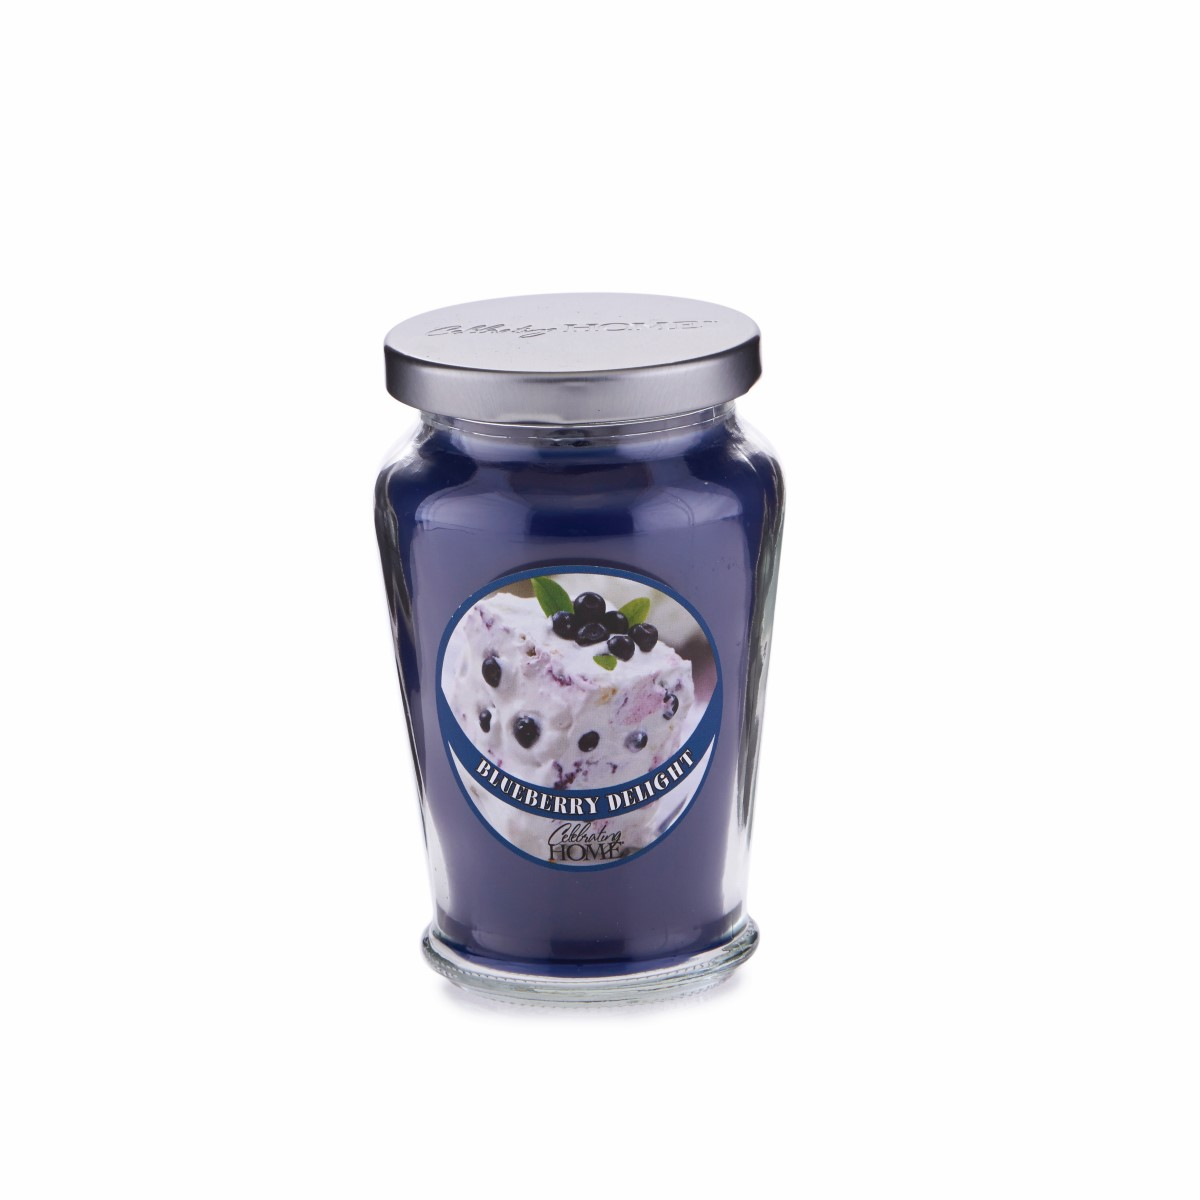 Classic Home Candle - Blueberry Delight